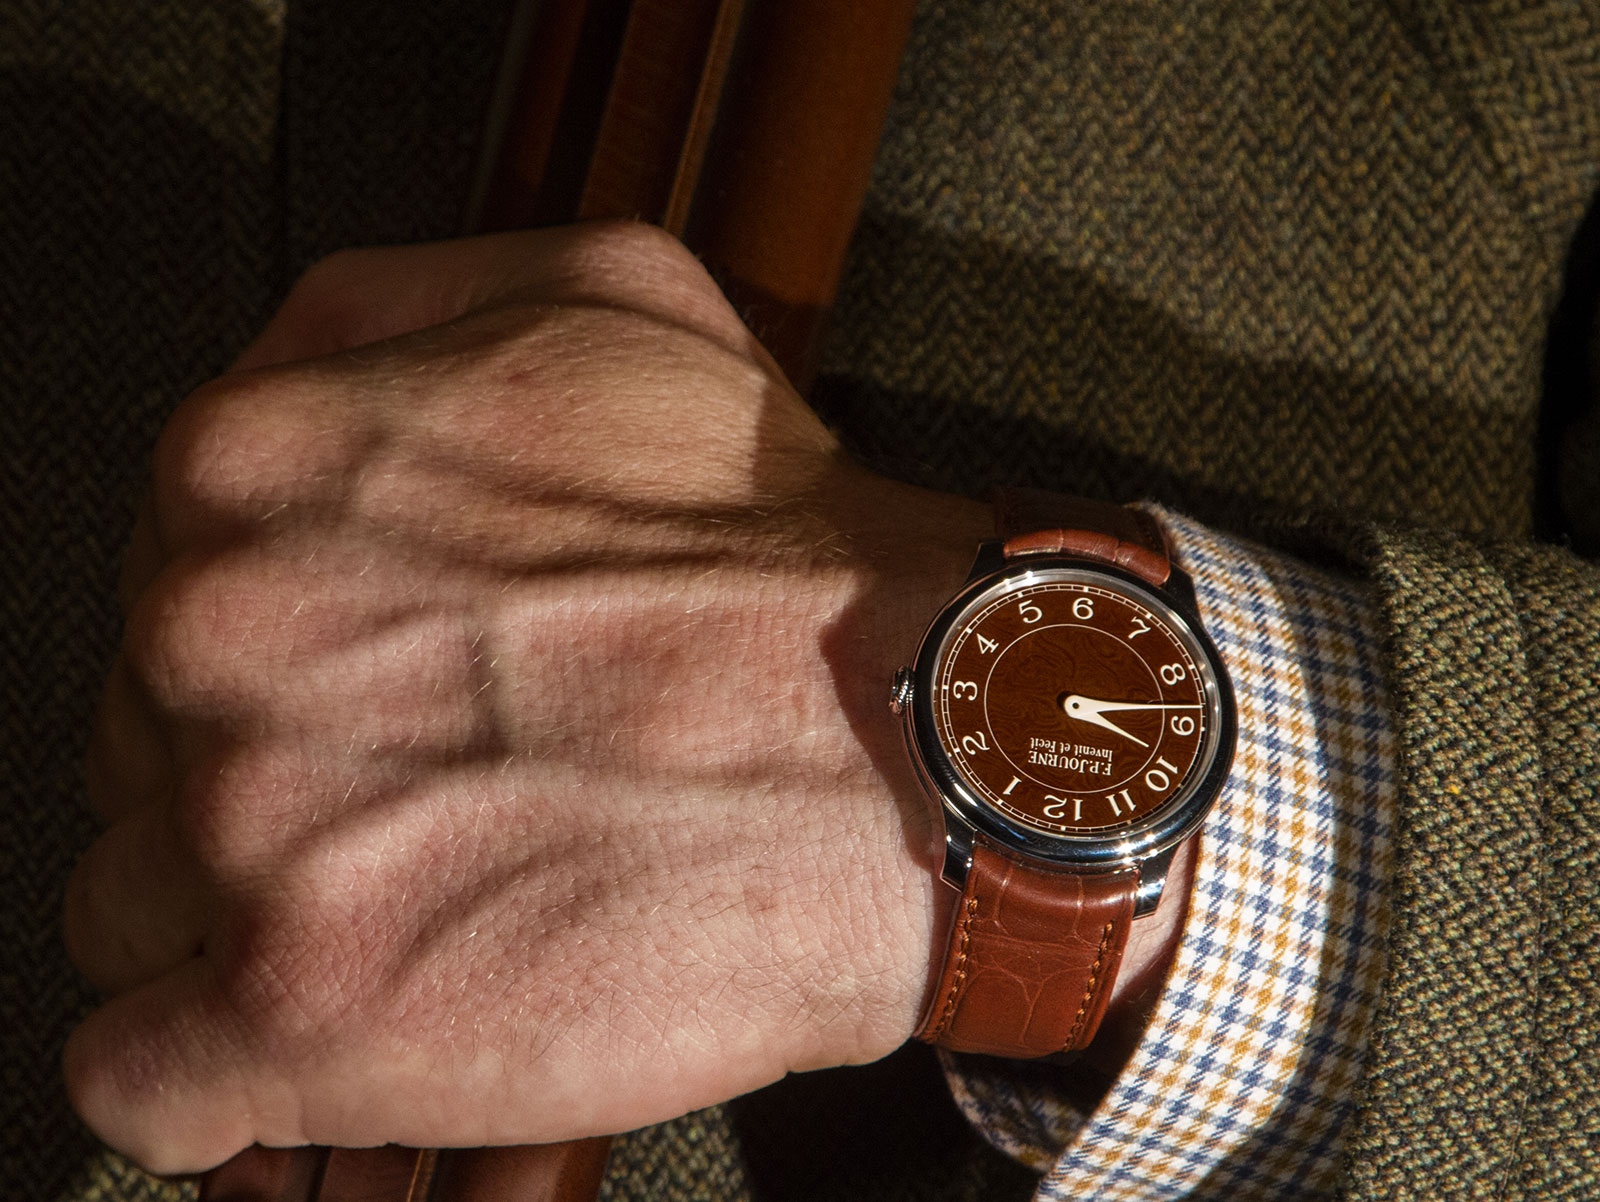 FP Journe Holland and Holland 11